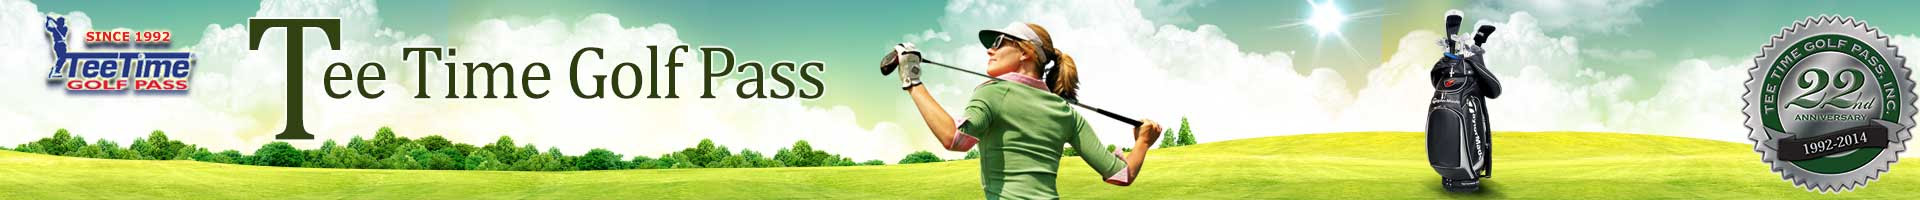 Tee Time Golf Pass Coupon Code & Deals currently has coupon_count active coupons. Today's top coupons: Get 60% Off Sitewide At Tee Time Golf Pass Coupon Code & Deals. Use Tee Time Golf Pass Coupon Code & Deals coupons to save on Tee Time Golf Pass Coupon Code & Deals purchase in Entertainments/5(55).